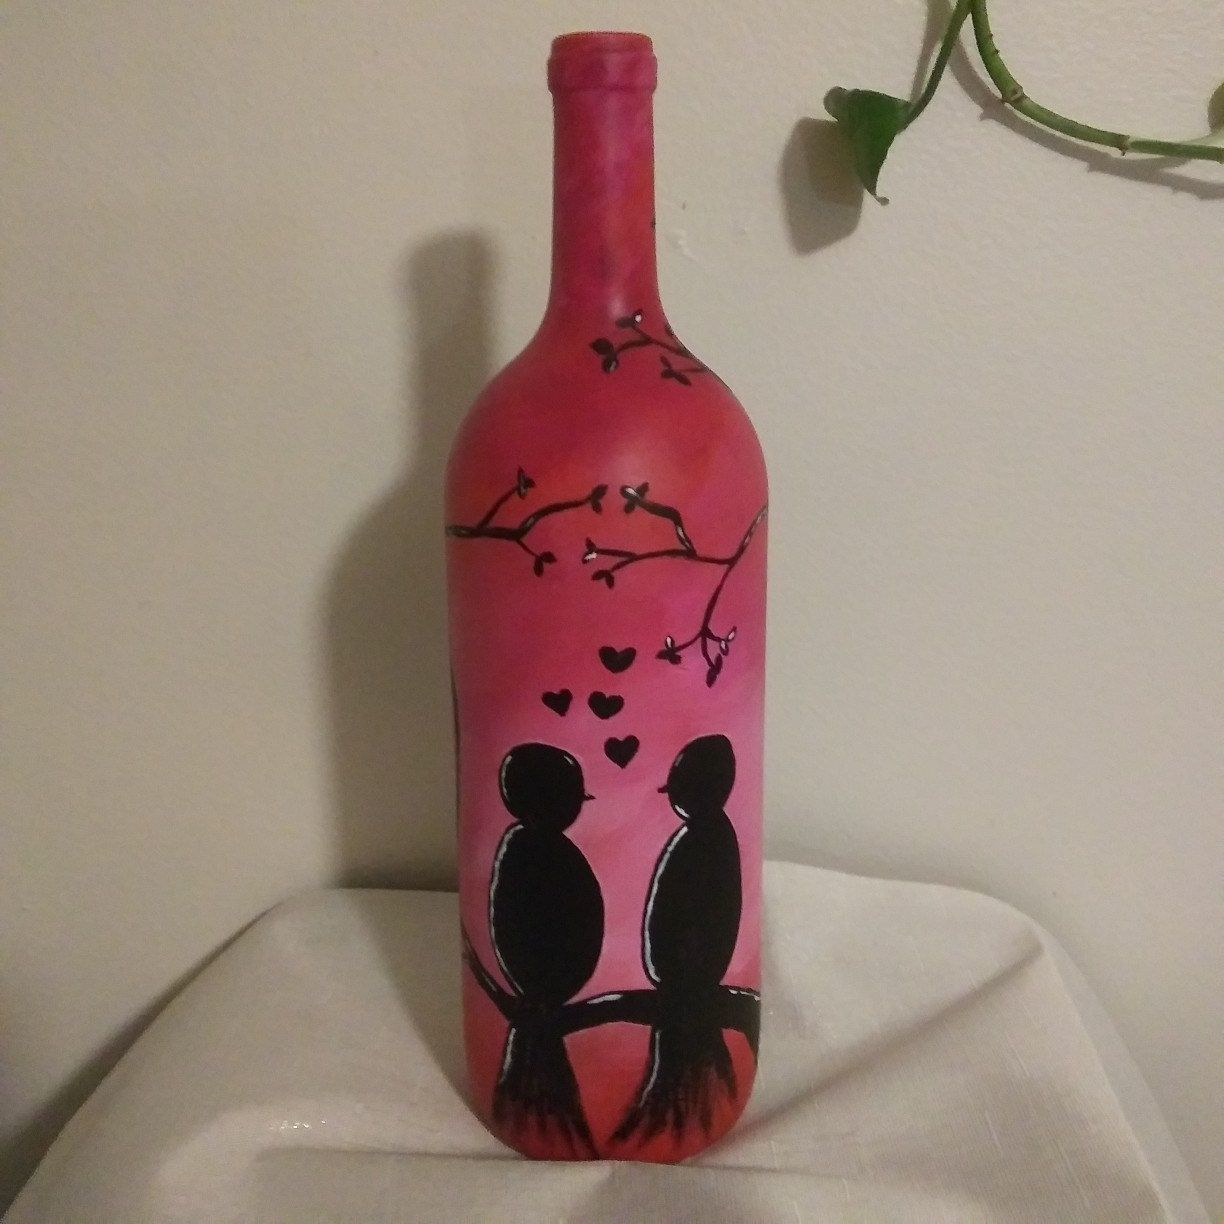 Made To Order With Name Lamp Hand Painted Pinks Black Etsy In 2020 Hand Painted Wine Bottles Bottle Art Projects Hand Painted Necklace